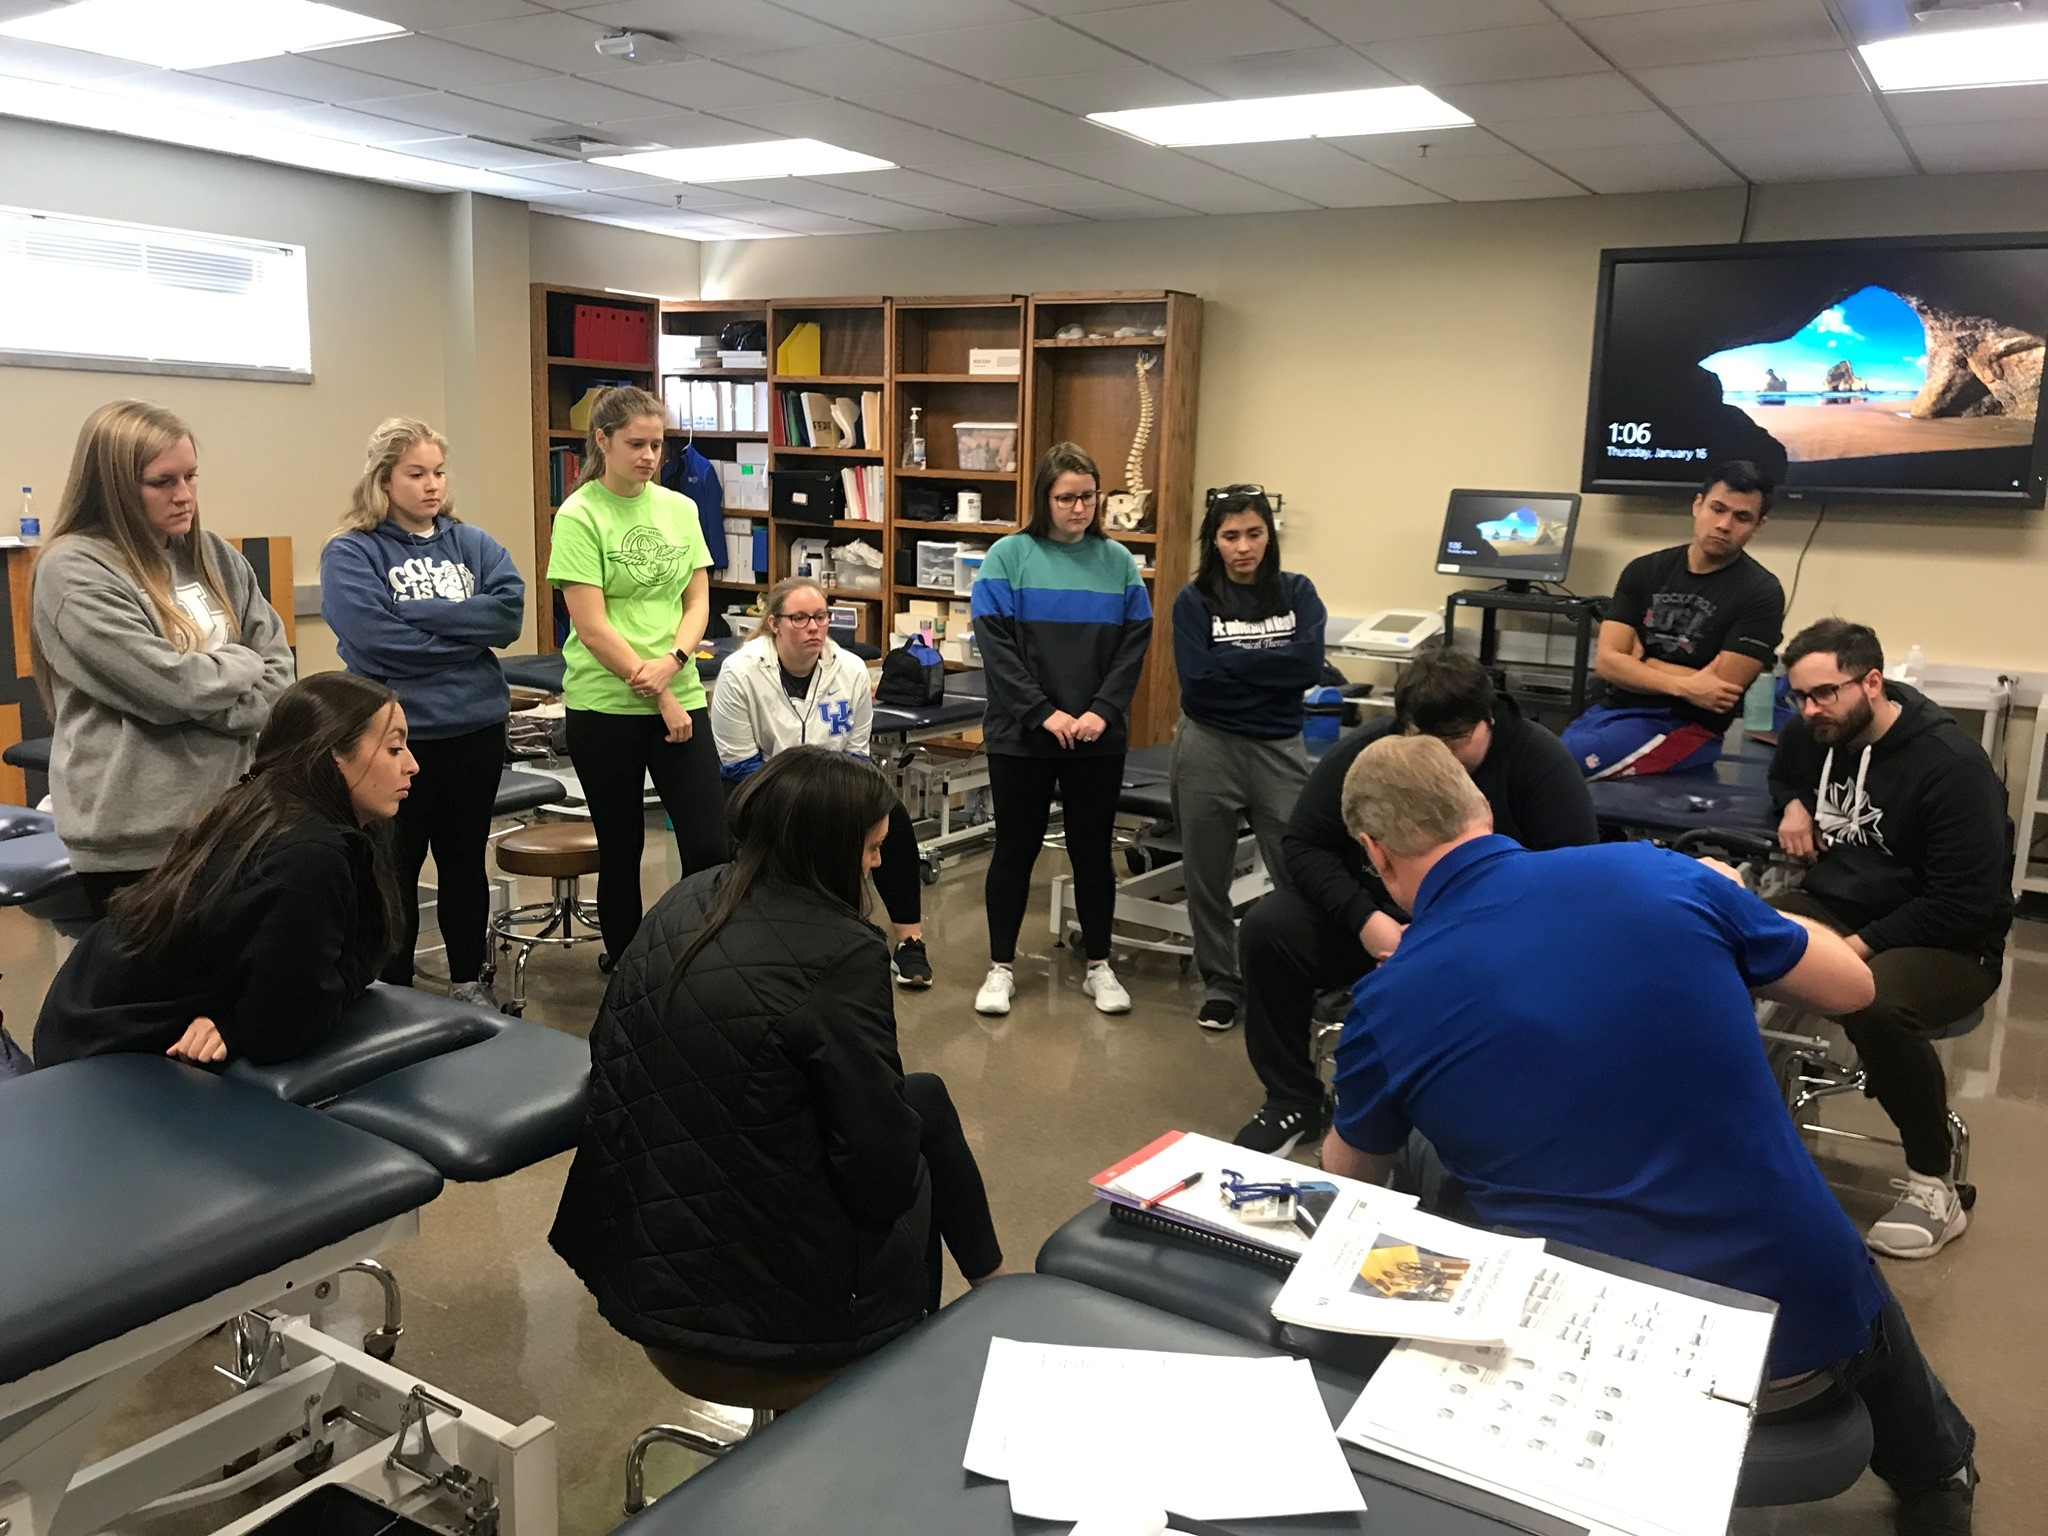 Students watch as Dr. Pat Kitzman teaches how to refurbish medical equipment.